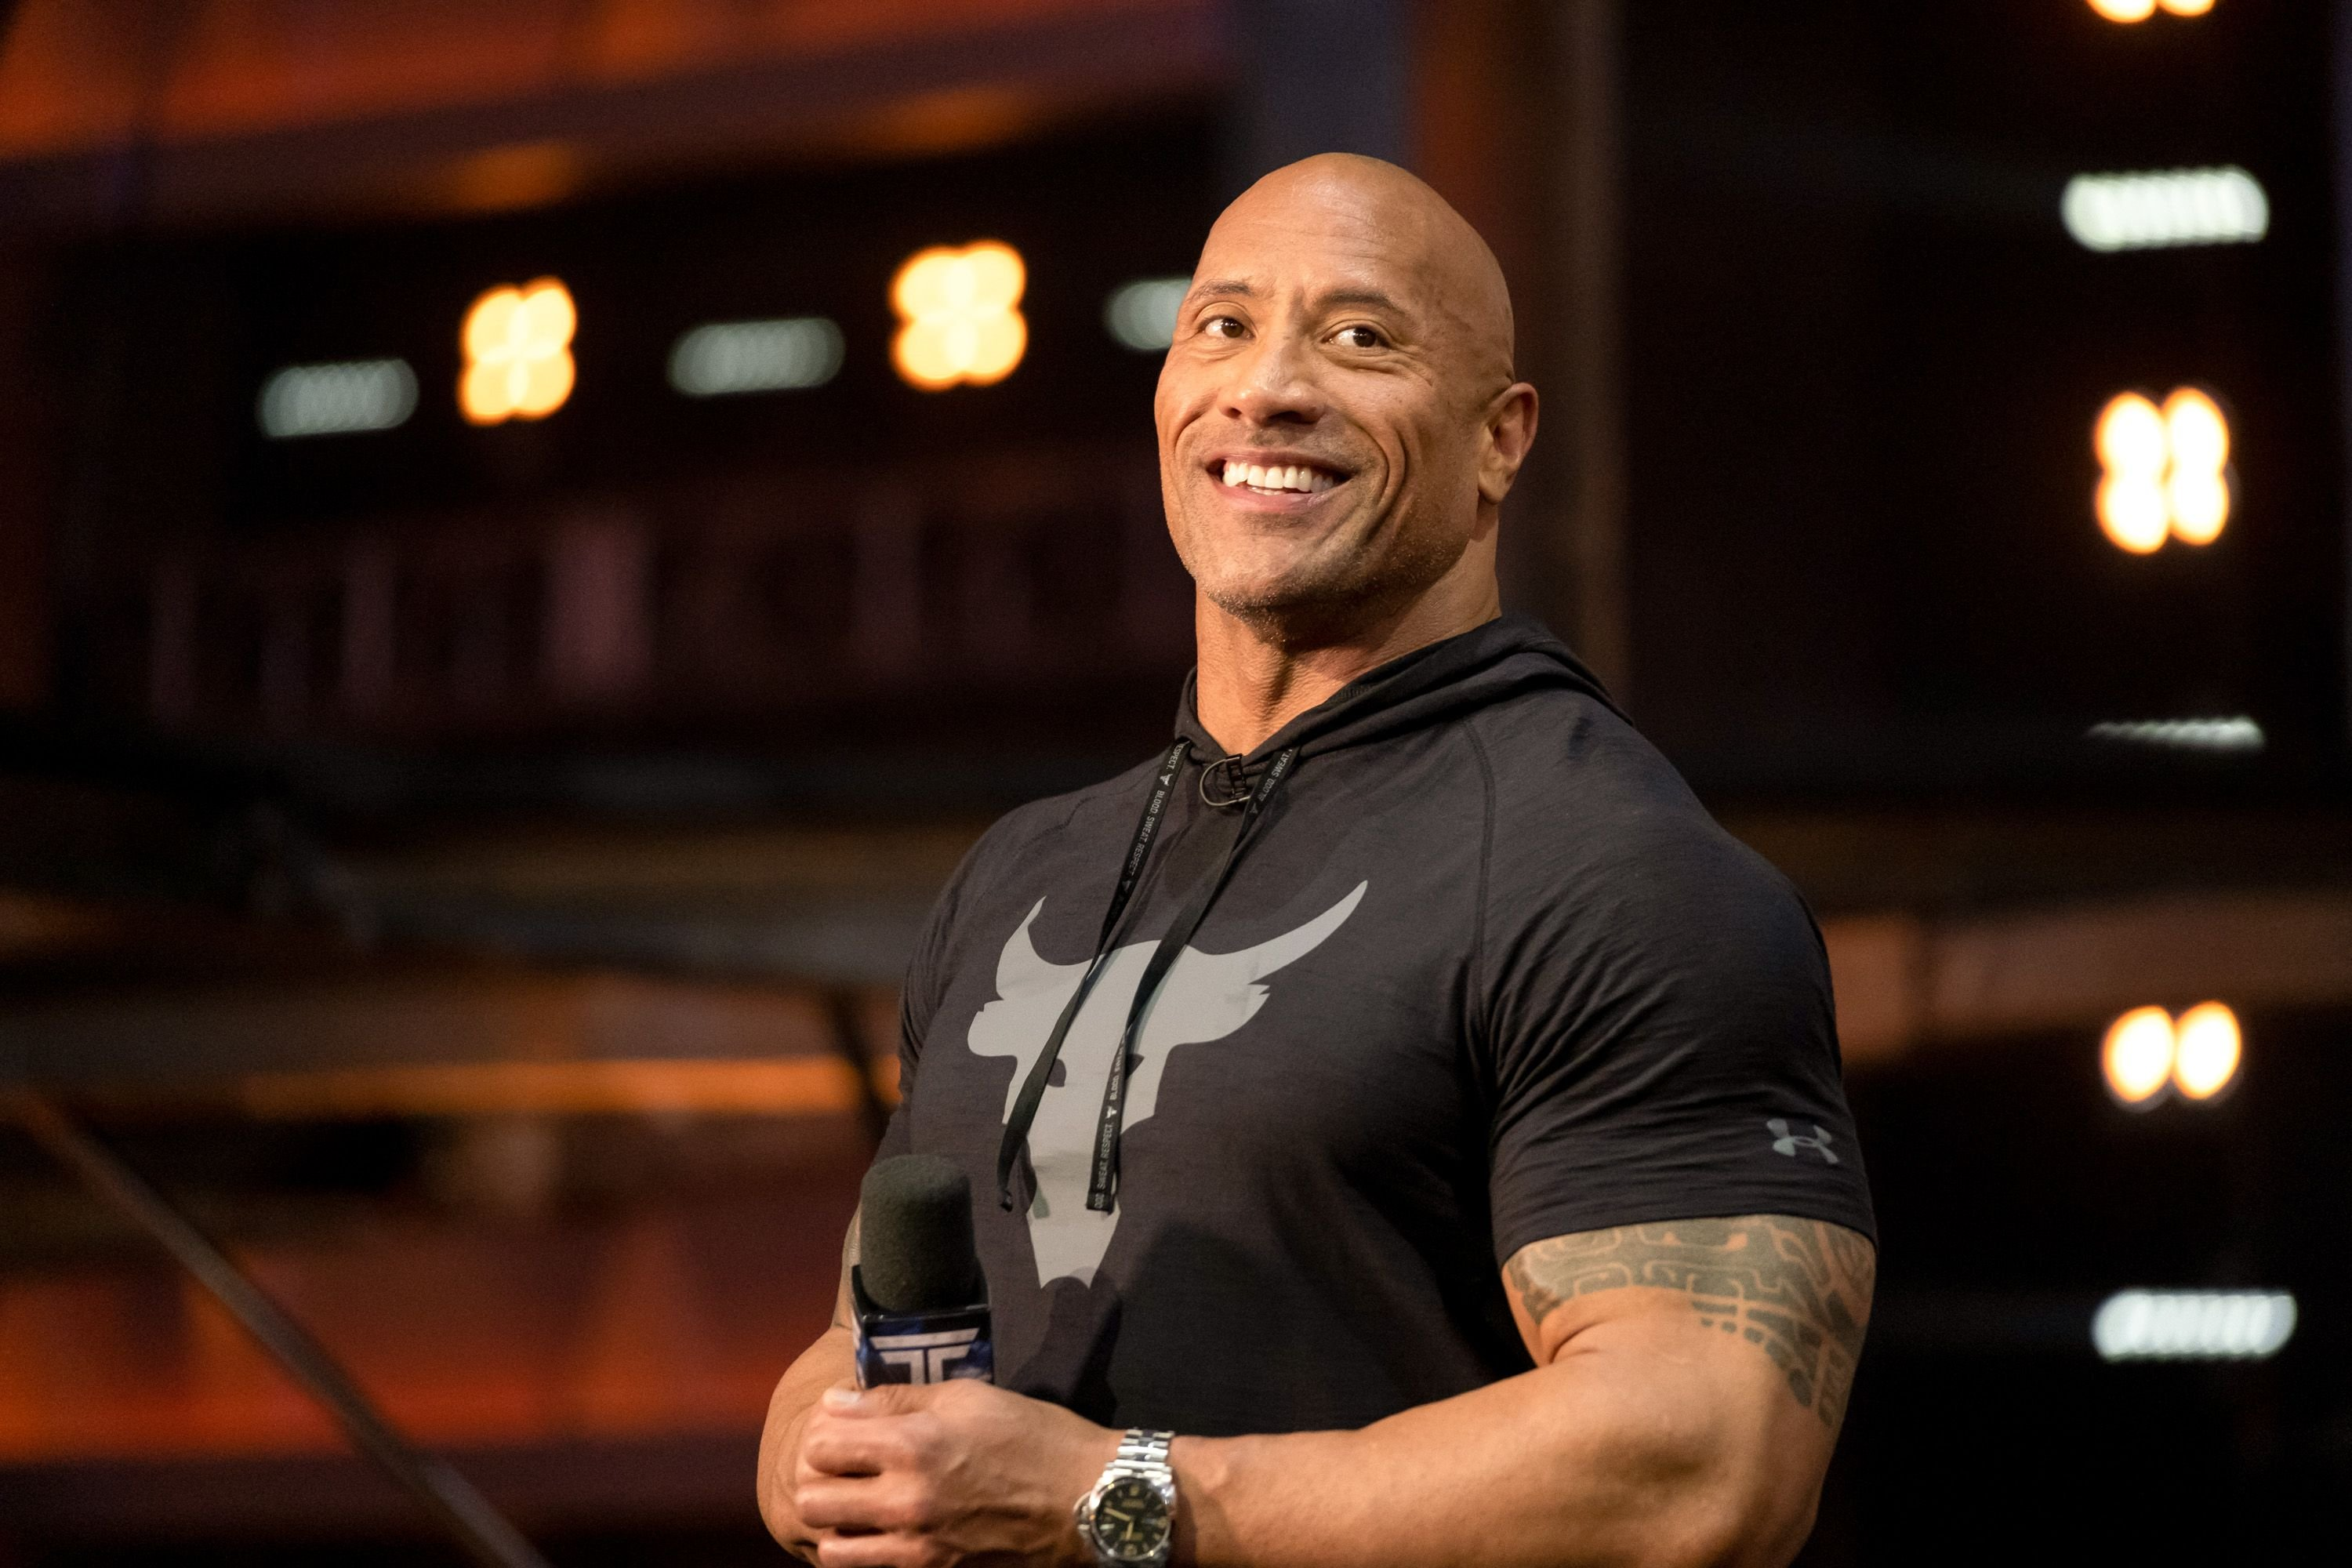 """Dwayne Johnson on the set of season 2 of """"The Titan Games"""" for its West Region PremiereonFebruary 04, 2020 